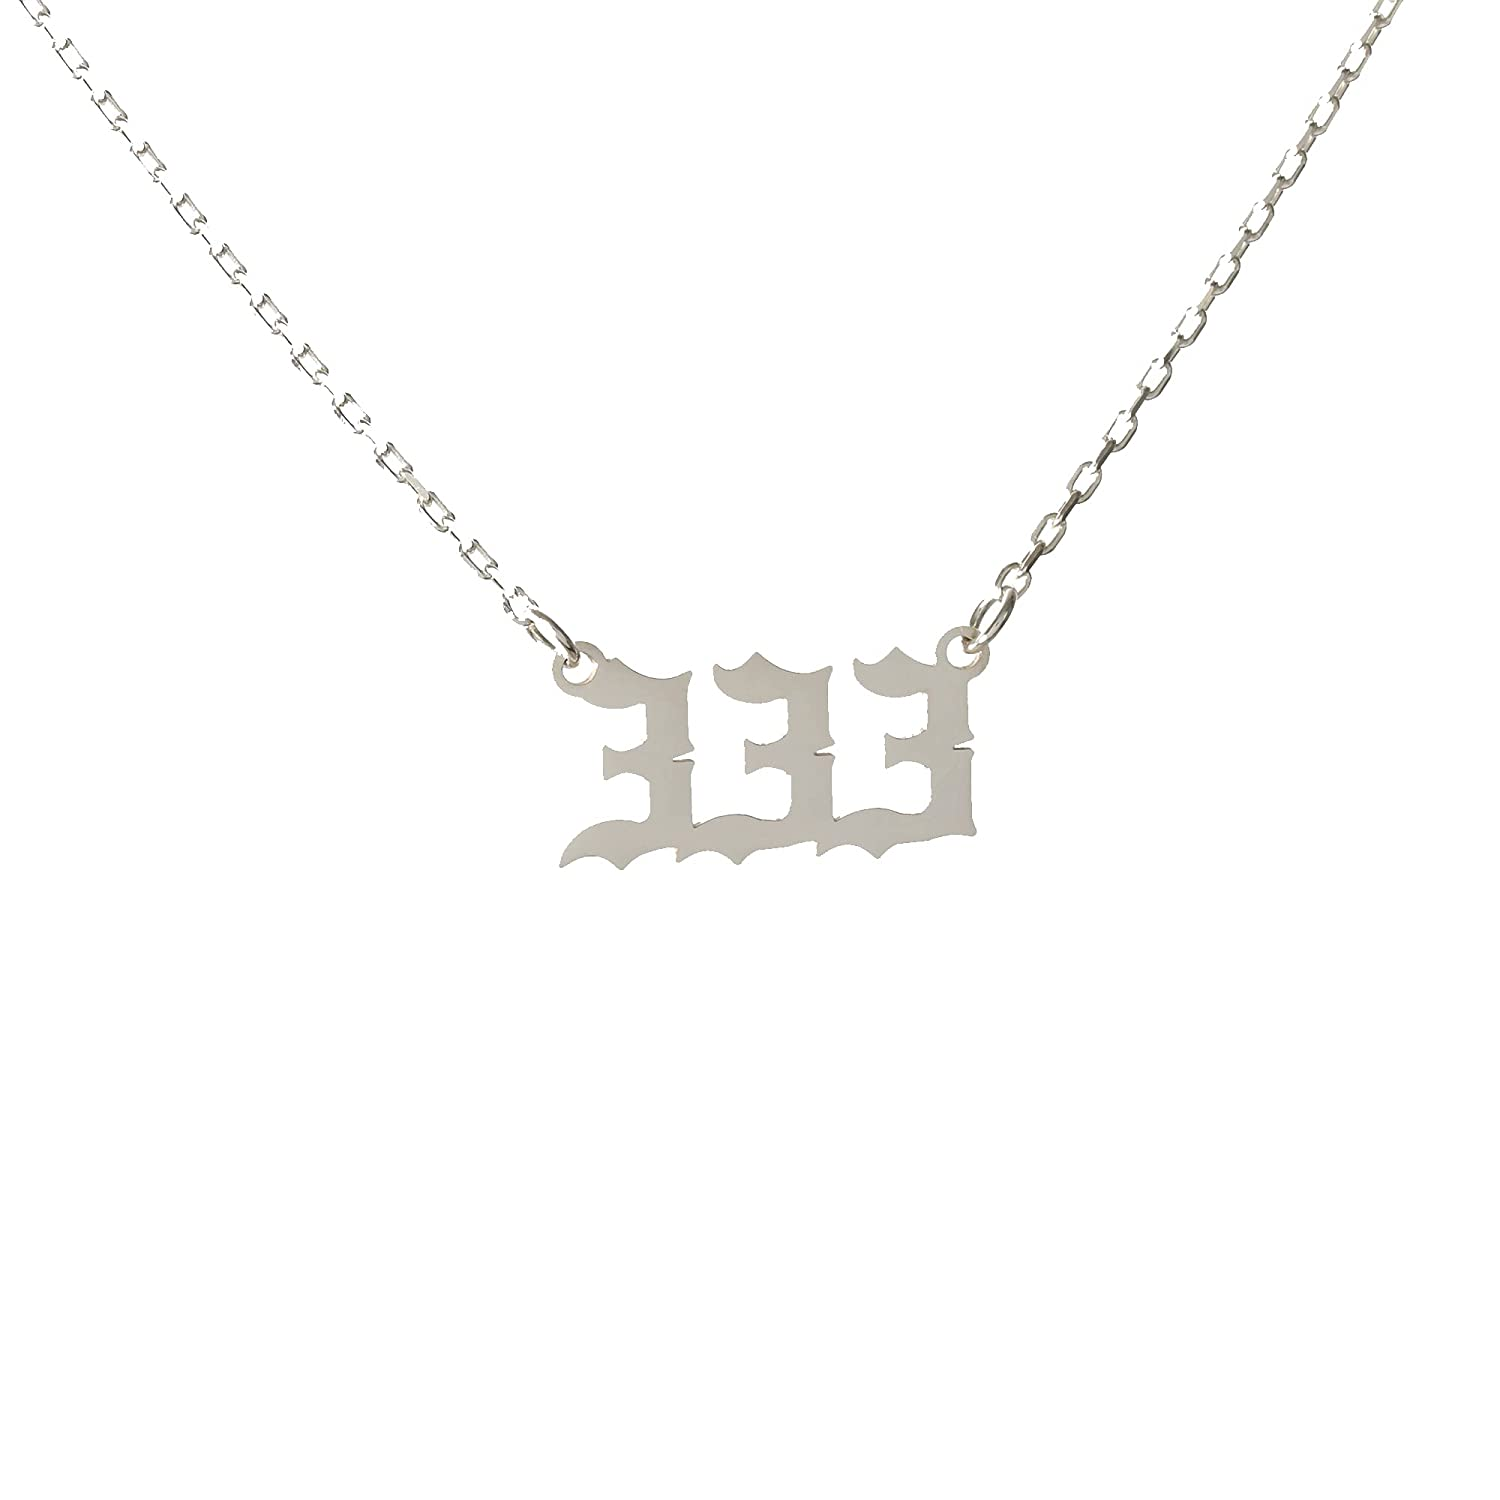 333 Silver Angel Number Necklace 925 Quantity limited gold Brand Cheap Sale Venue with sterling silver